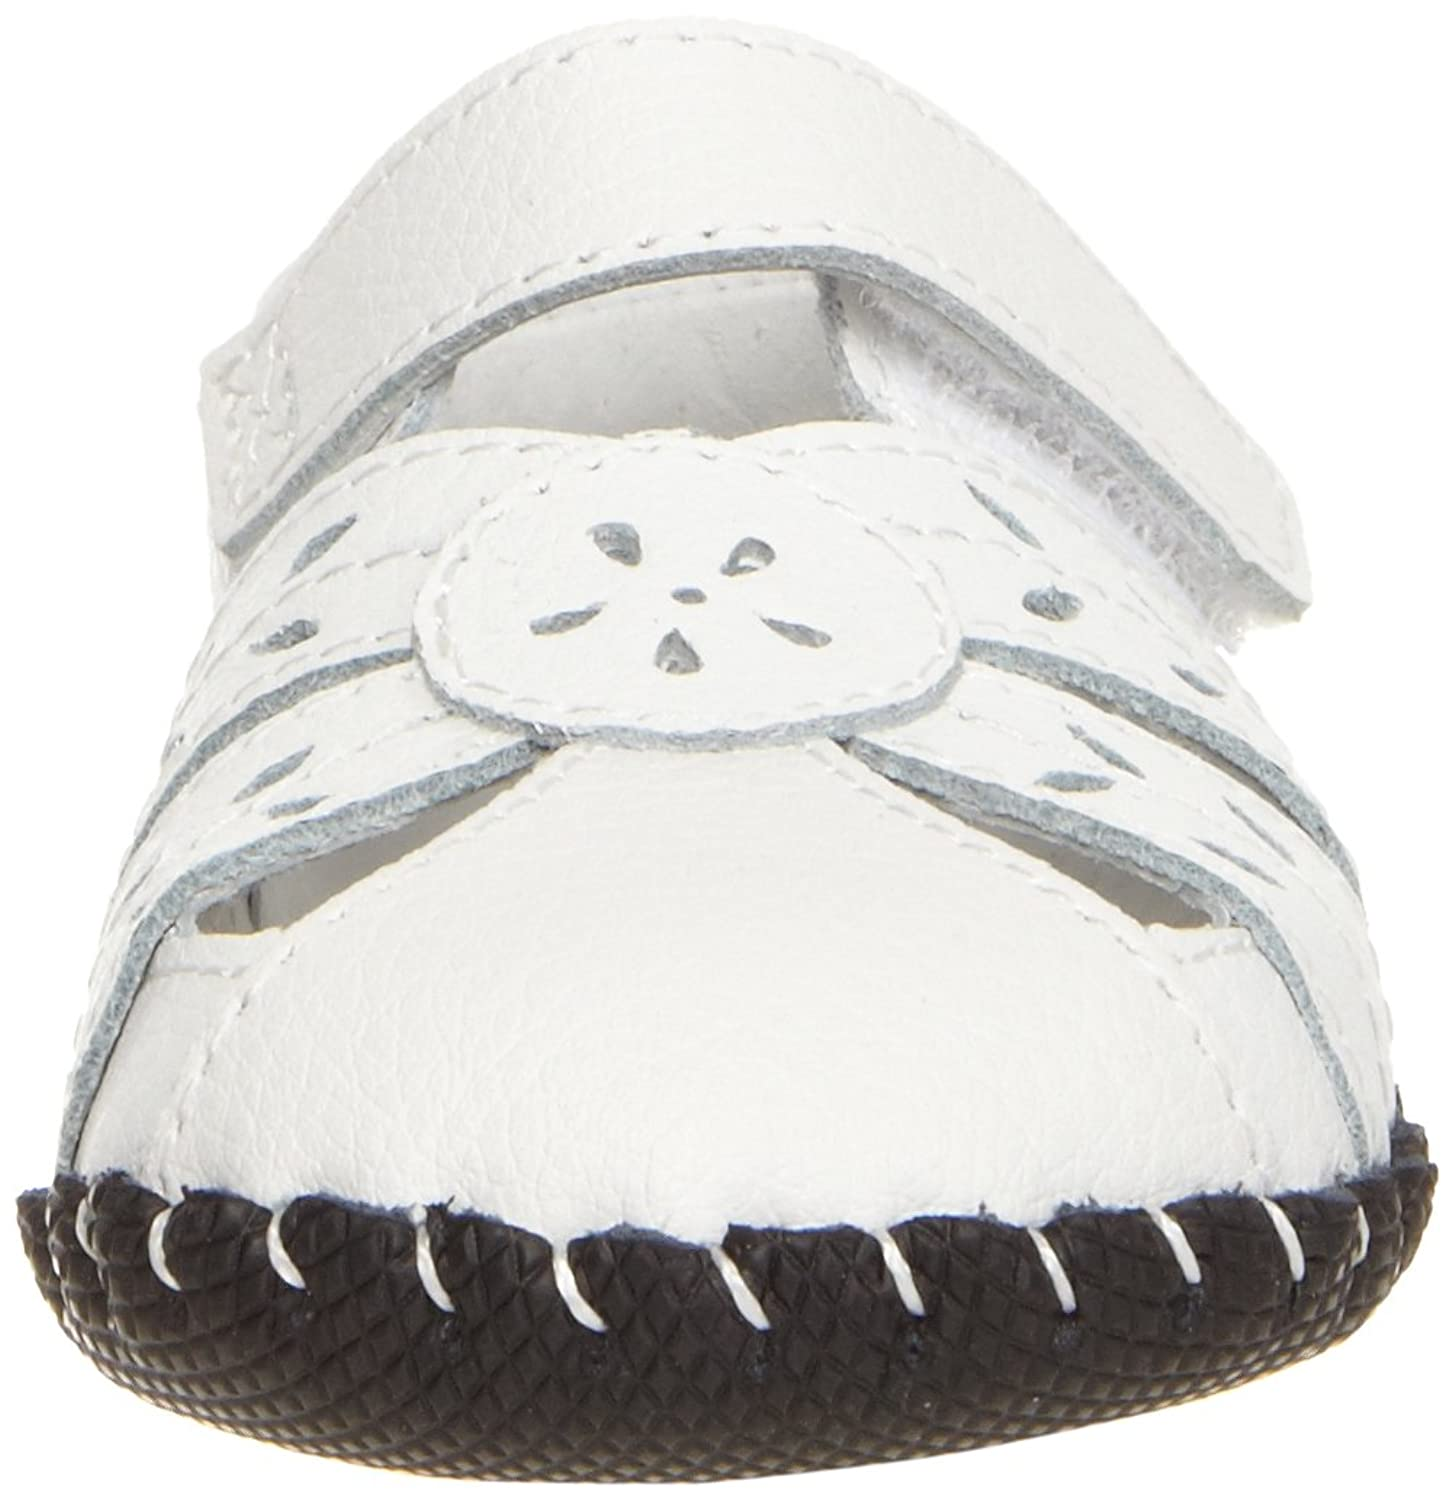 Amazon pediped Originals Daphne Sandal Infant Shoes